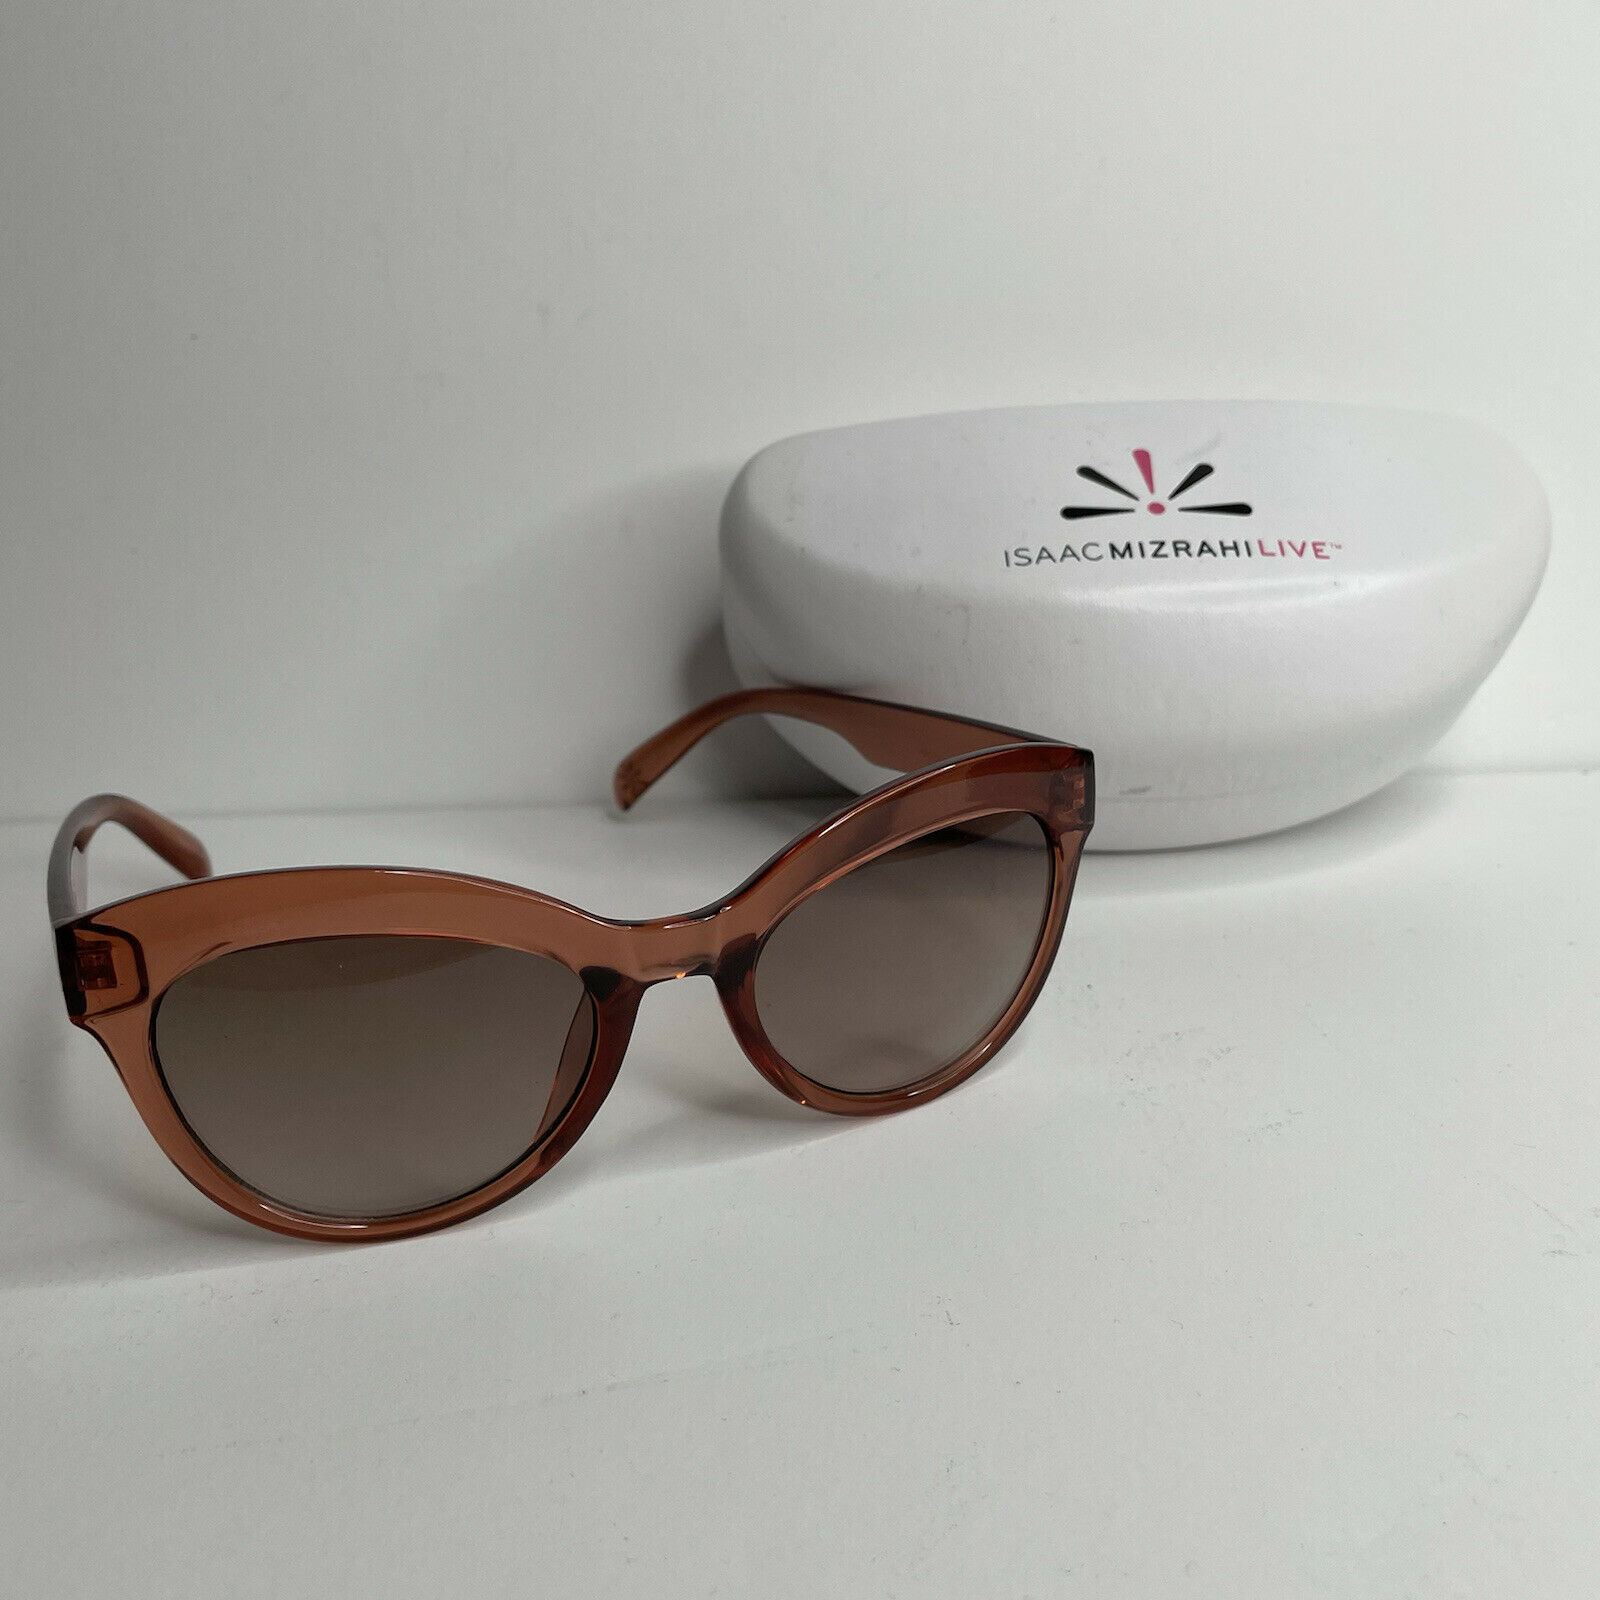 Isaac Mizrahi Live! Rounded Cat Eye Sunglasses - Used - Very Clean